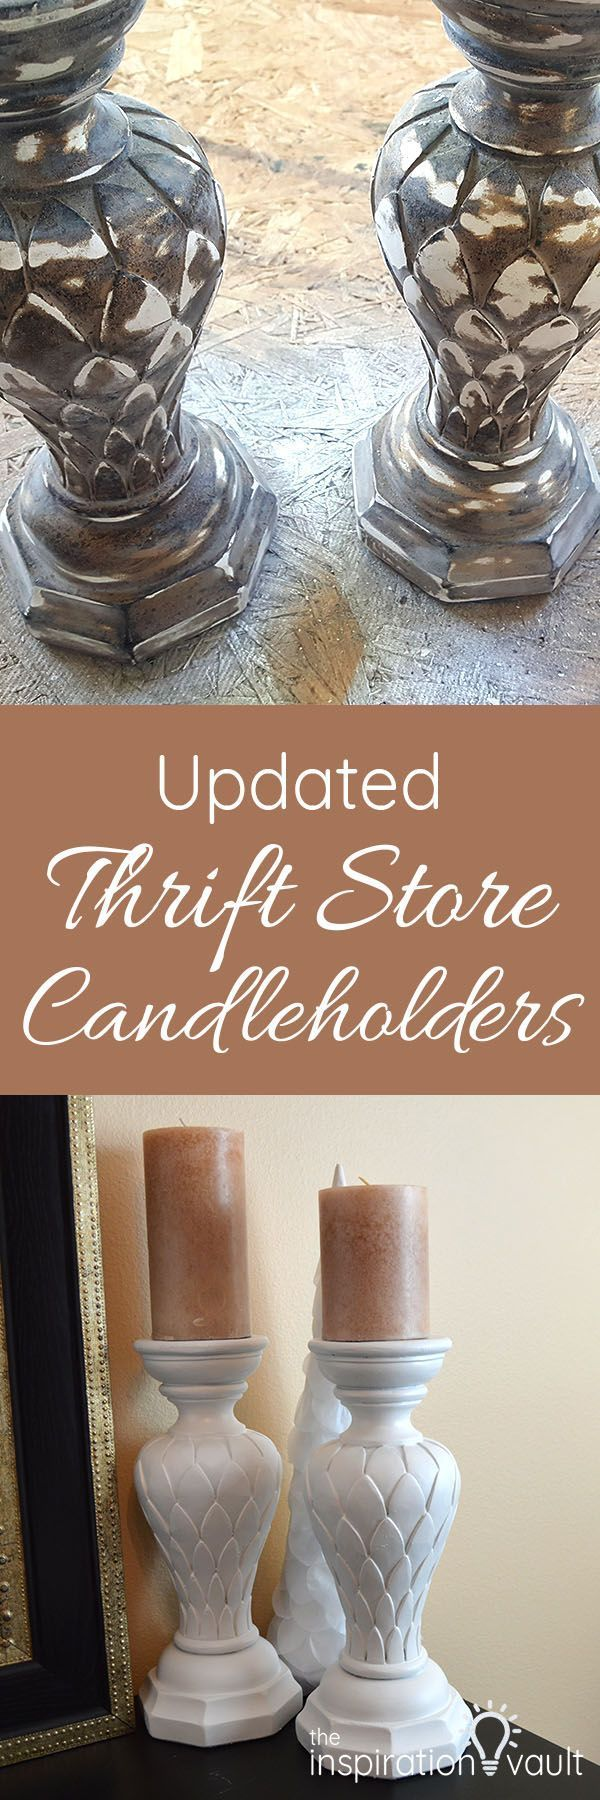 Updated Thrift Store Candleholders #thriftstorefinds